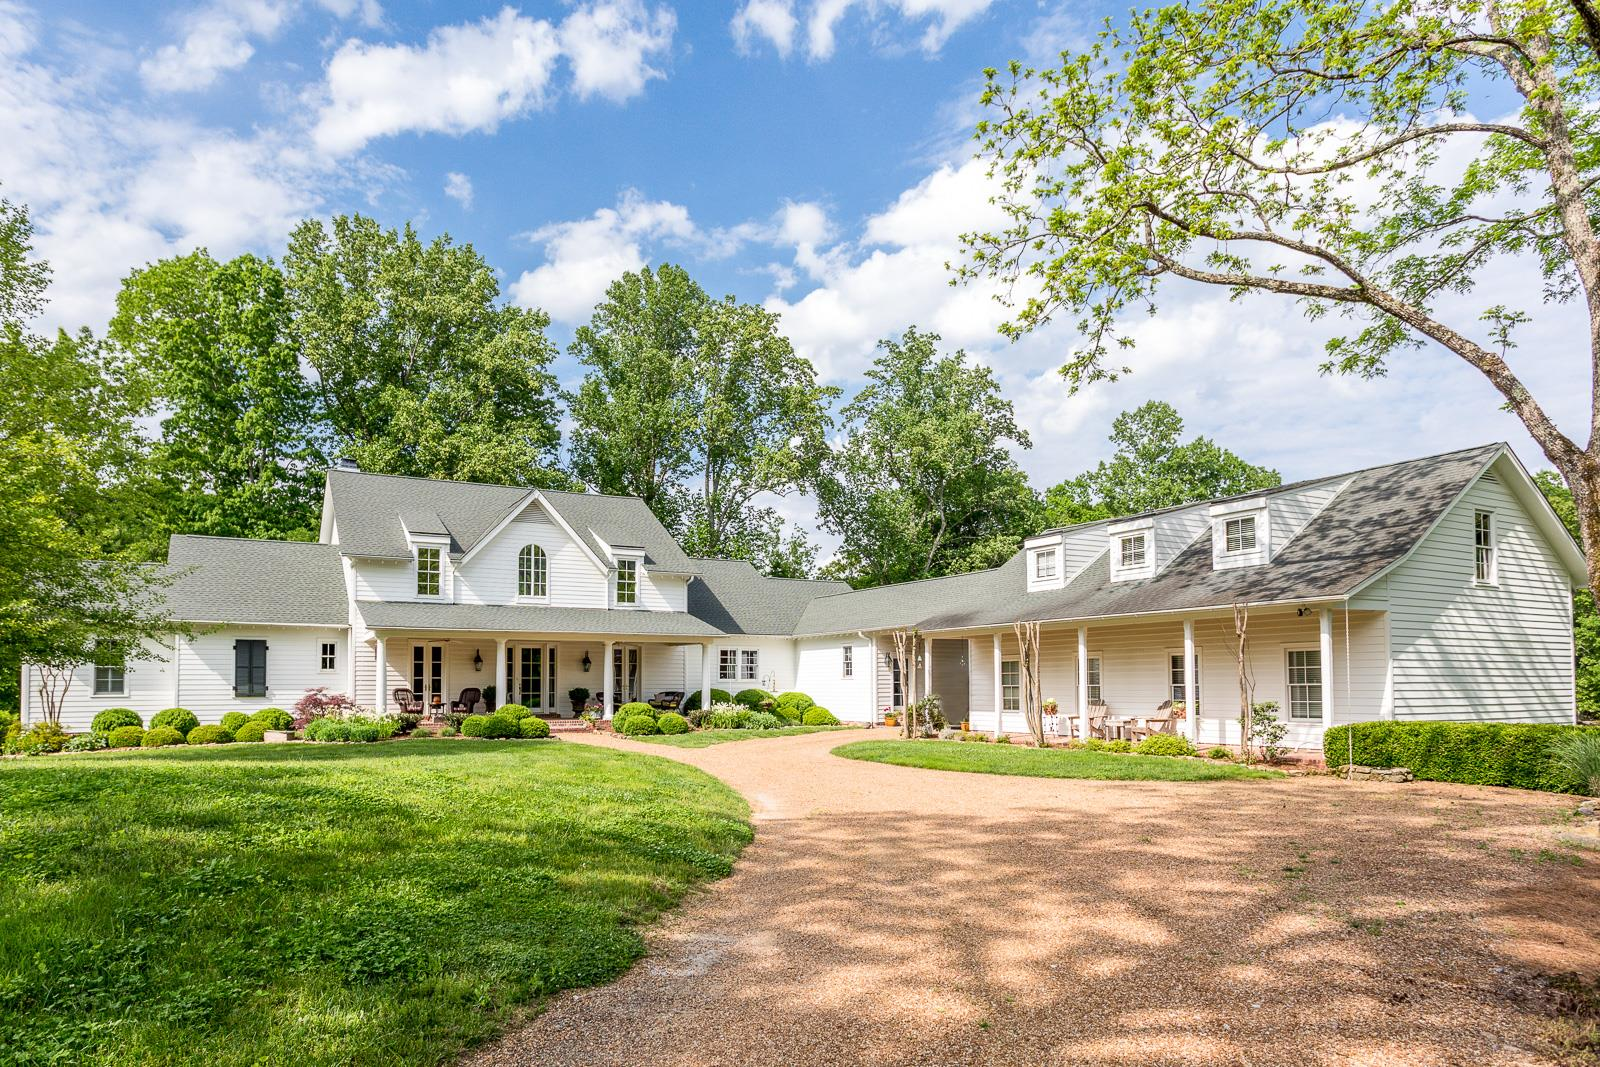 $3,700,000 - 4Br/6Ba -  for Sale in Leipers Fork, Franklin